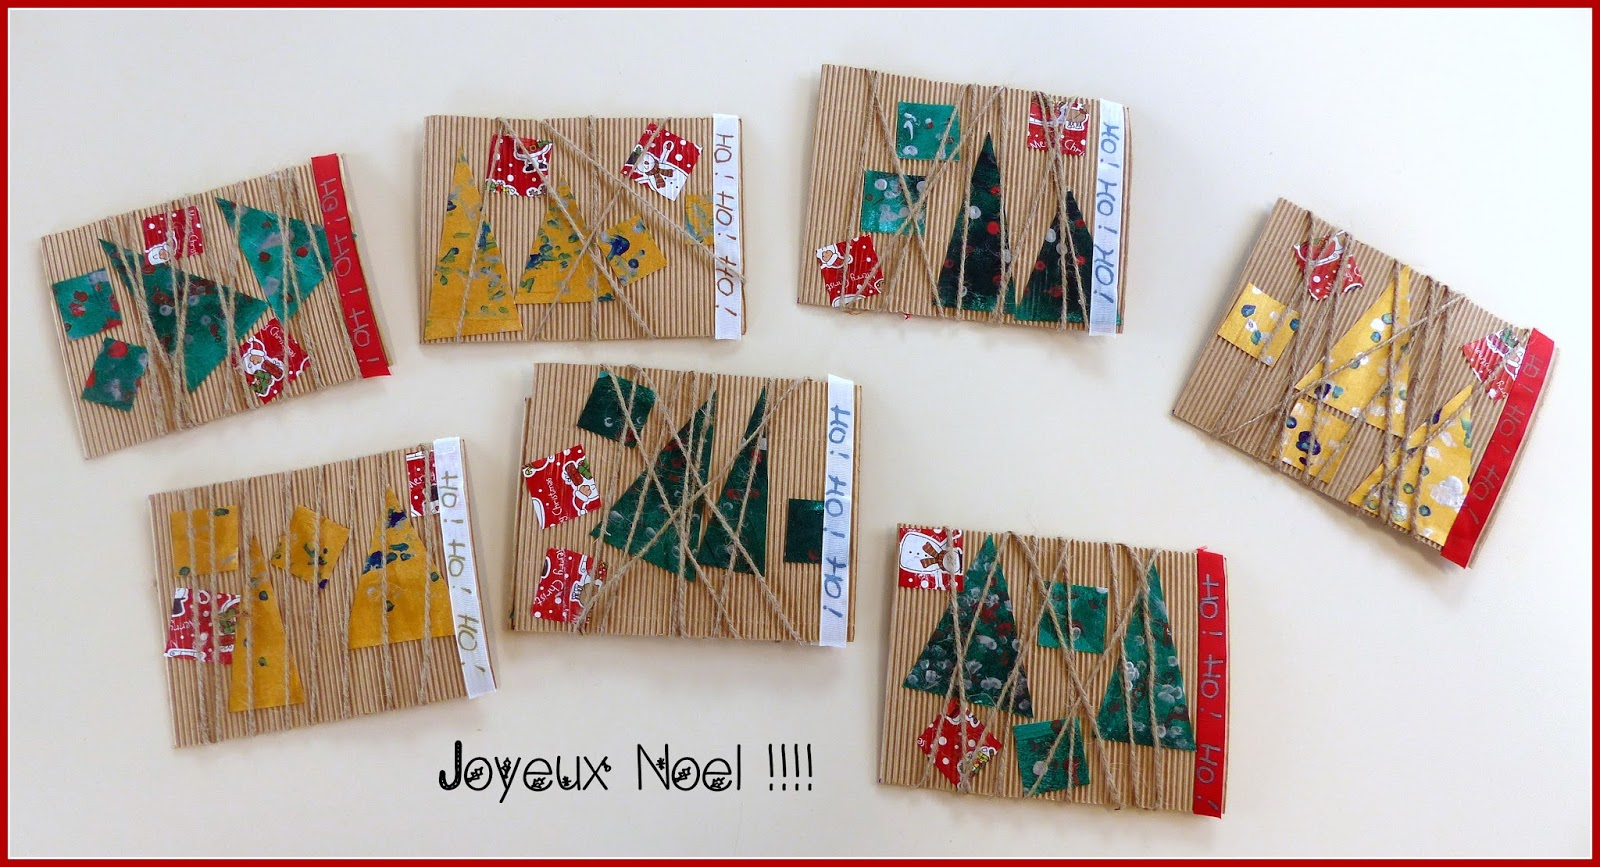 #AF1C28 Cartes De Noël 5481 décorations de noel petite section 1600x867 px @ aertt.com